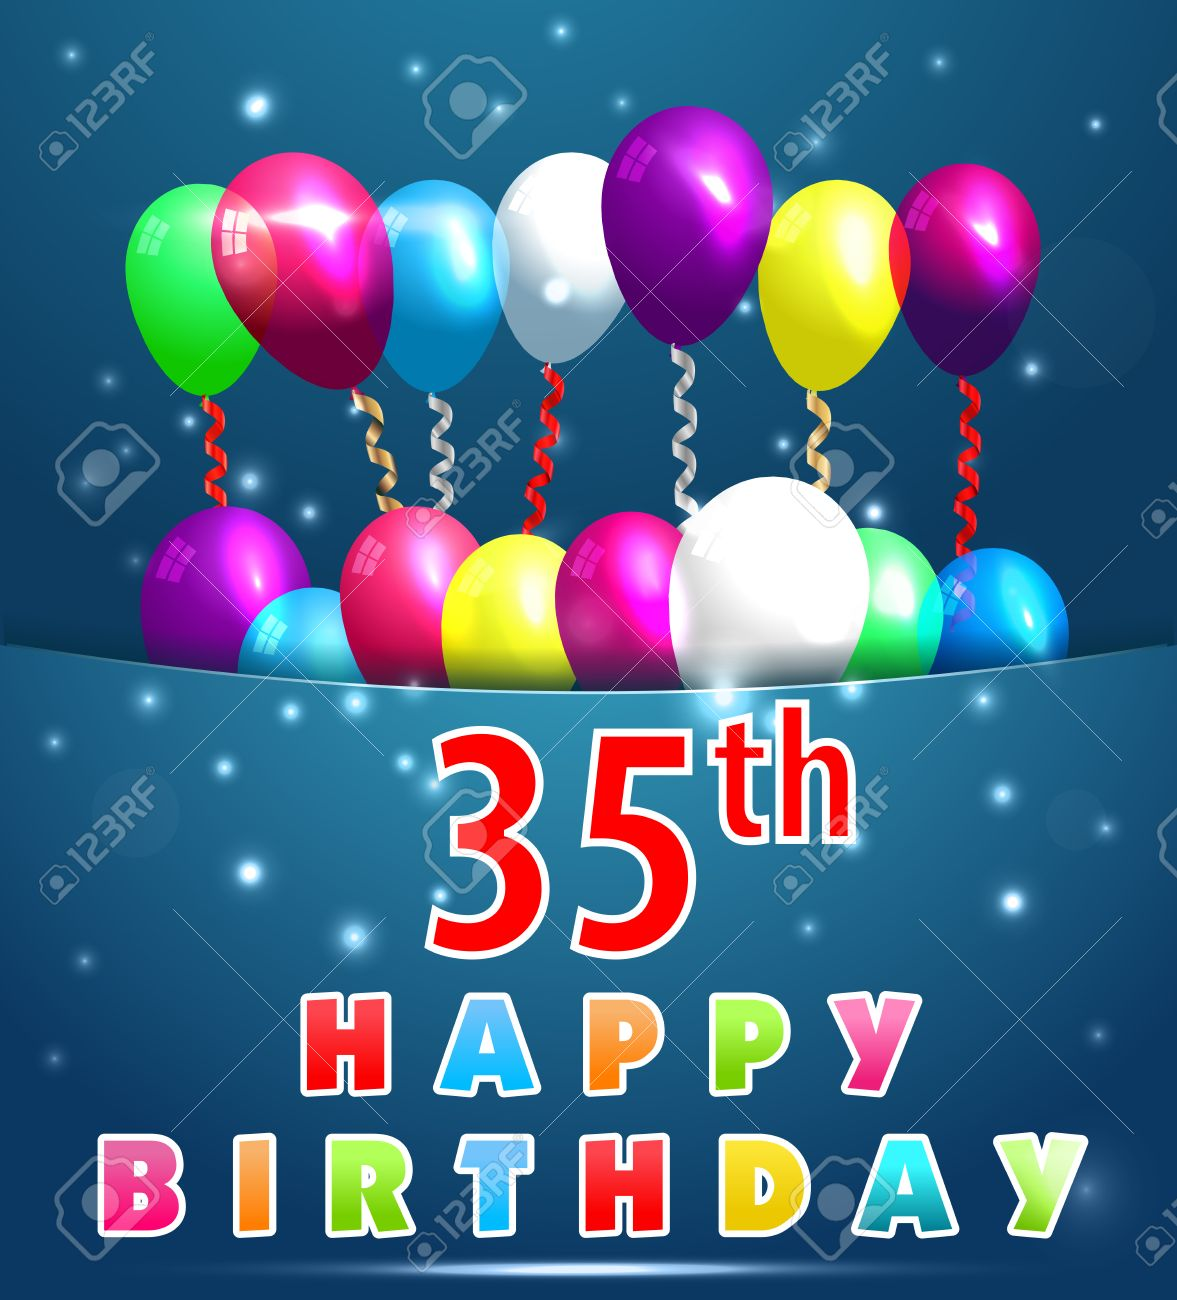 35 Year Happy Birthday Card With Balloons And Ribbons 35th Stock Vector